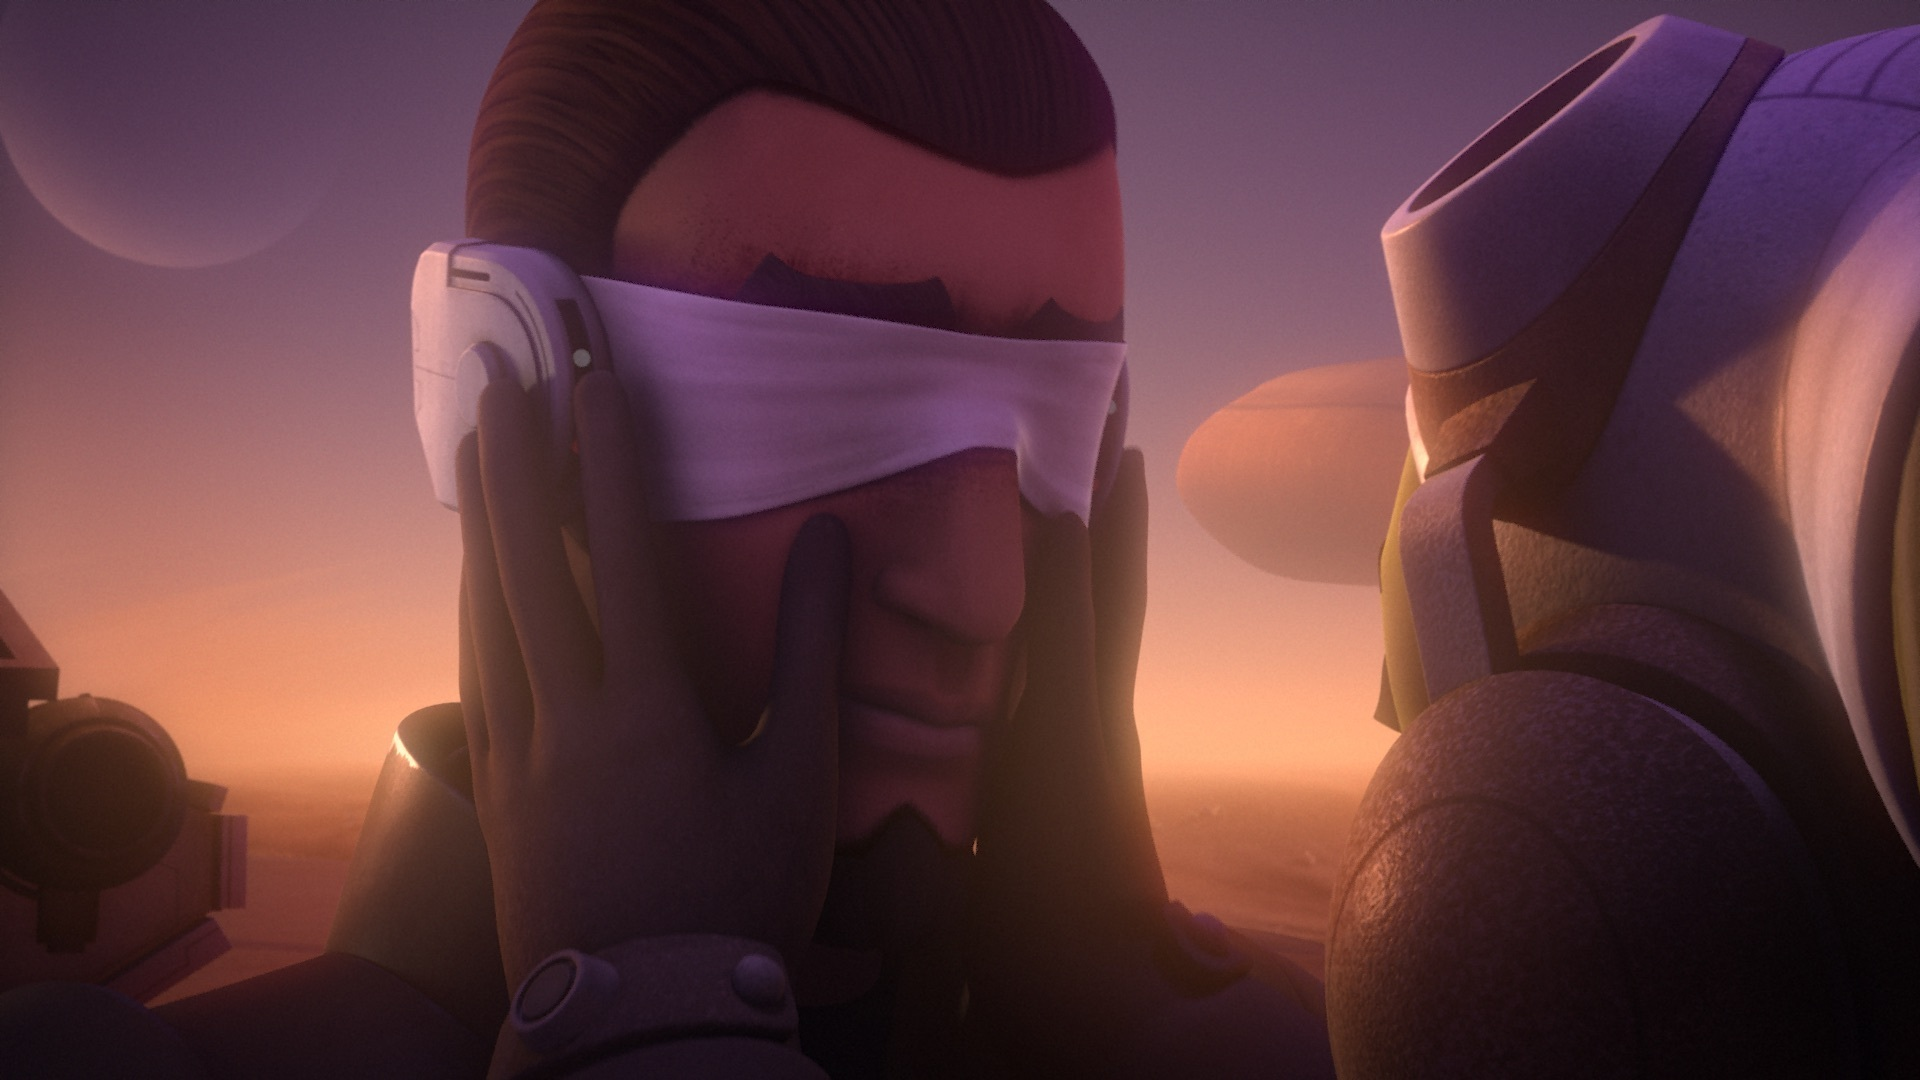 Star Wars Rebels - Blinded Kanan